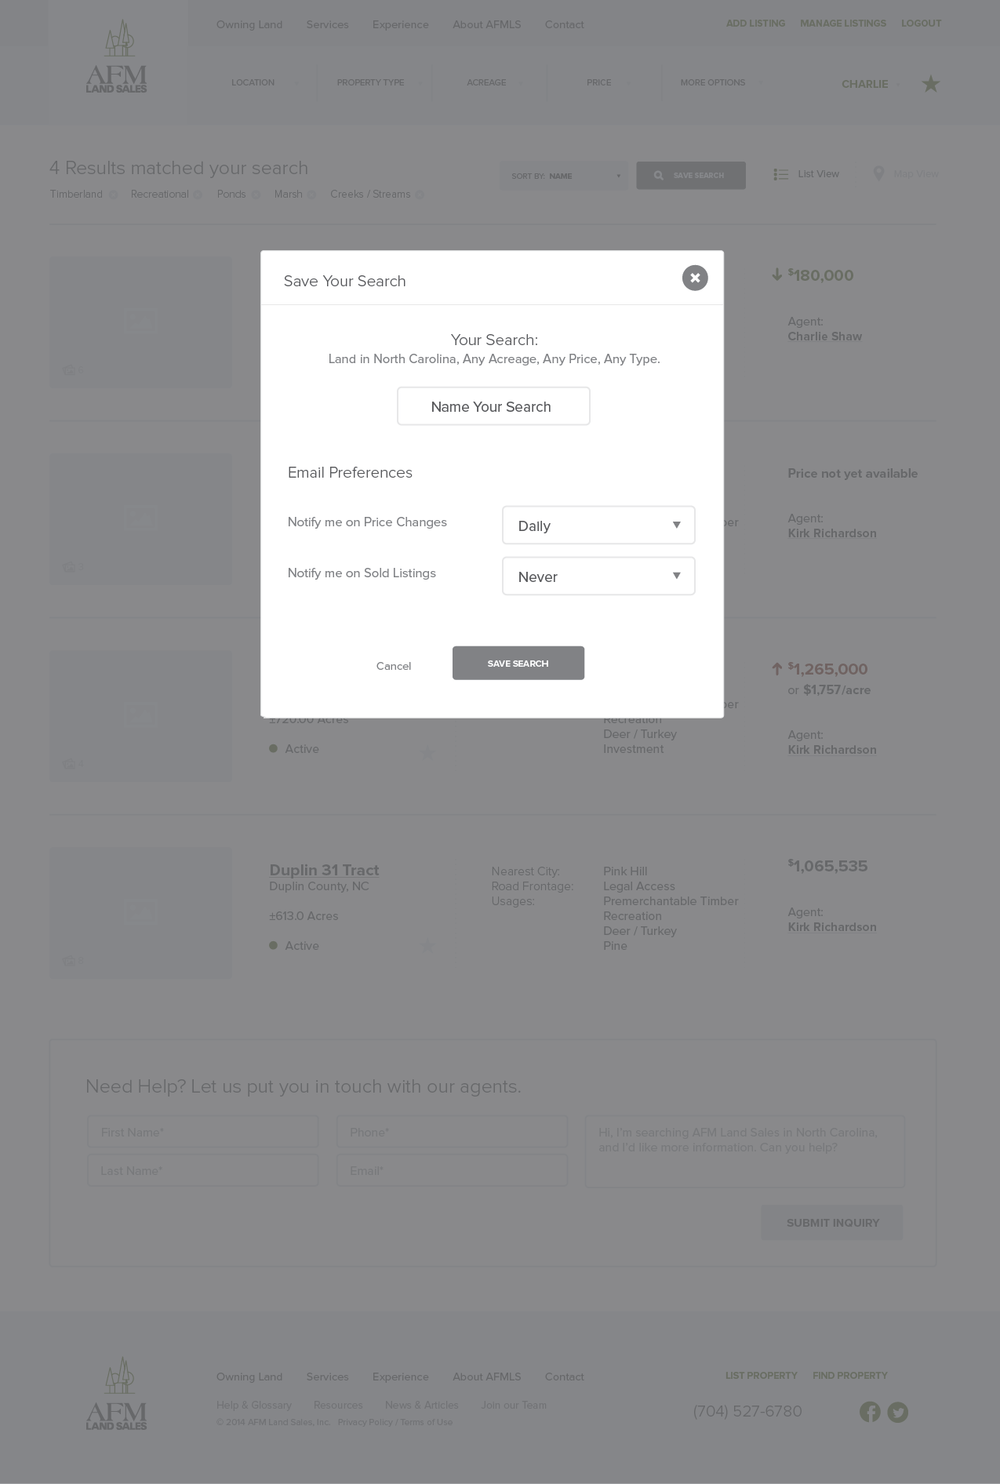 AFMLandSales-Wireframes_Signed In - Listing Page - Save Search.png